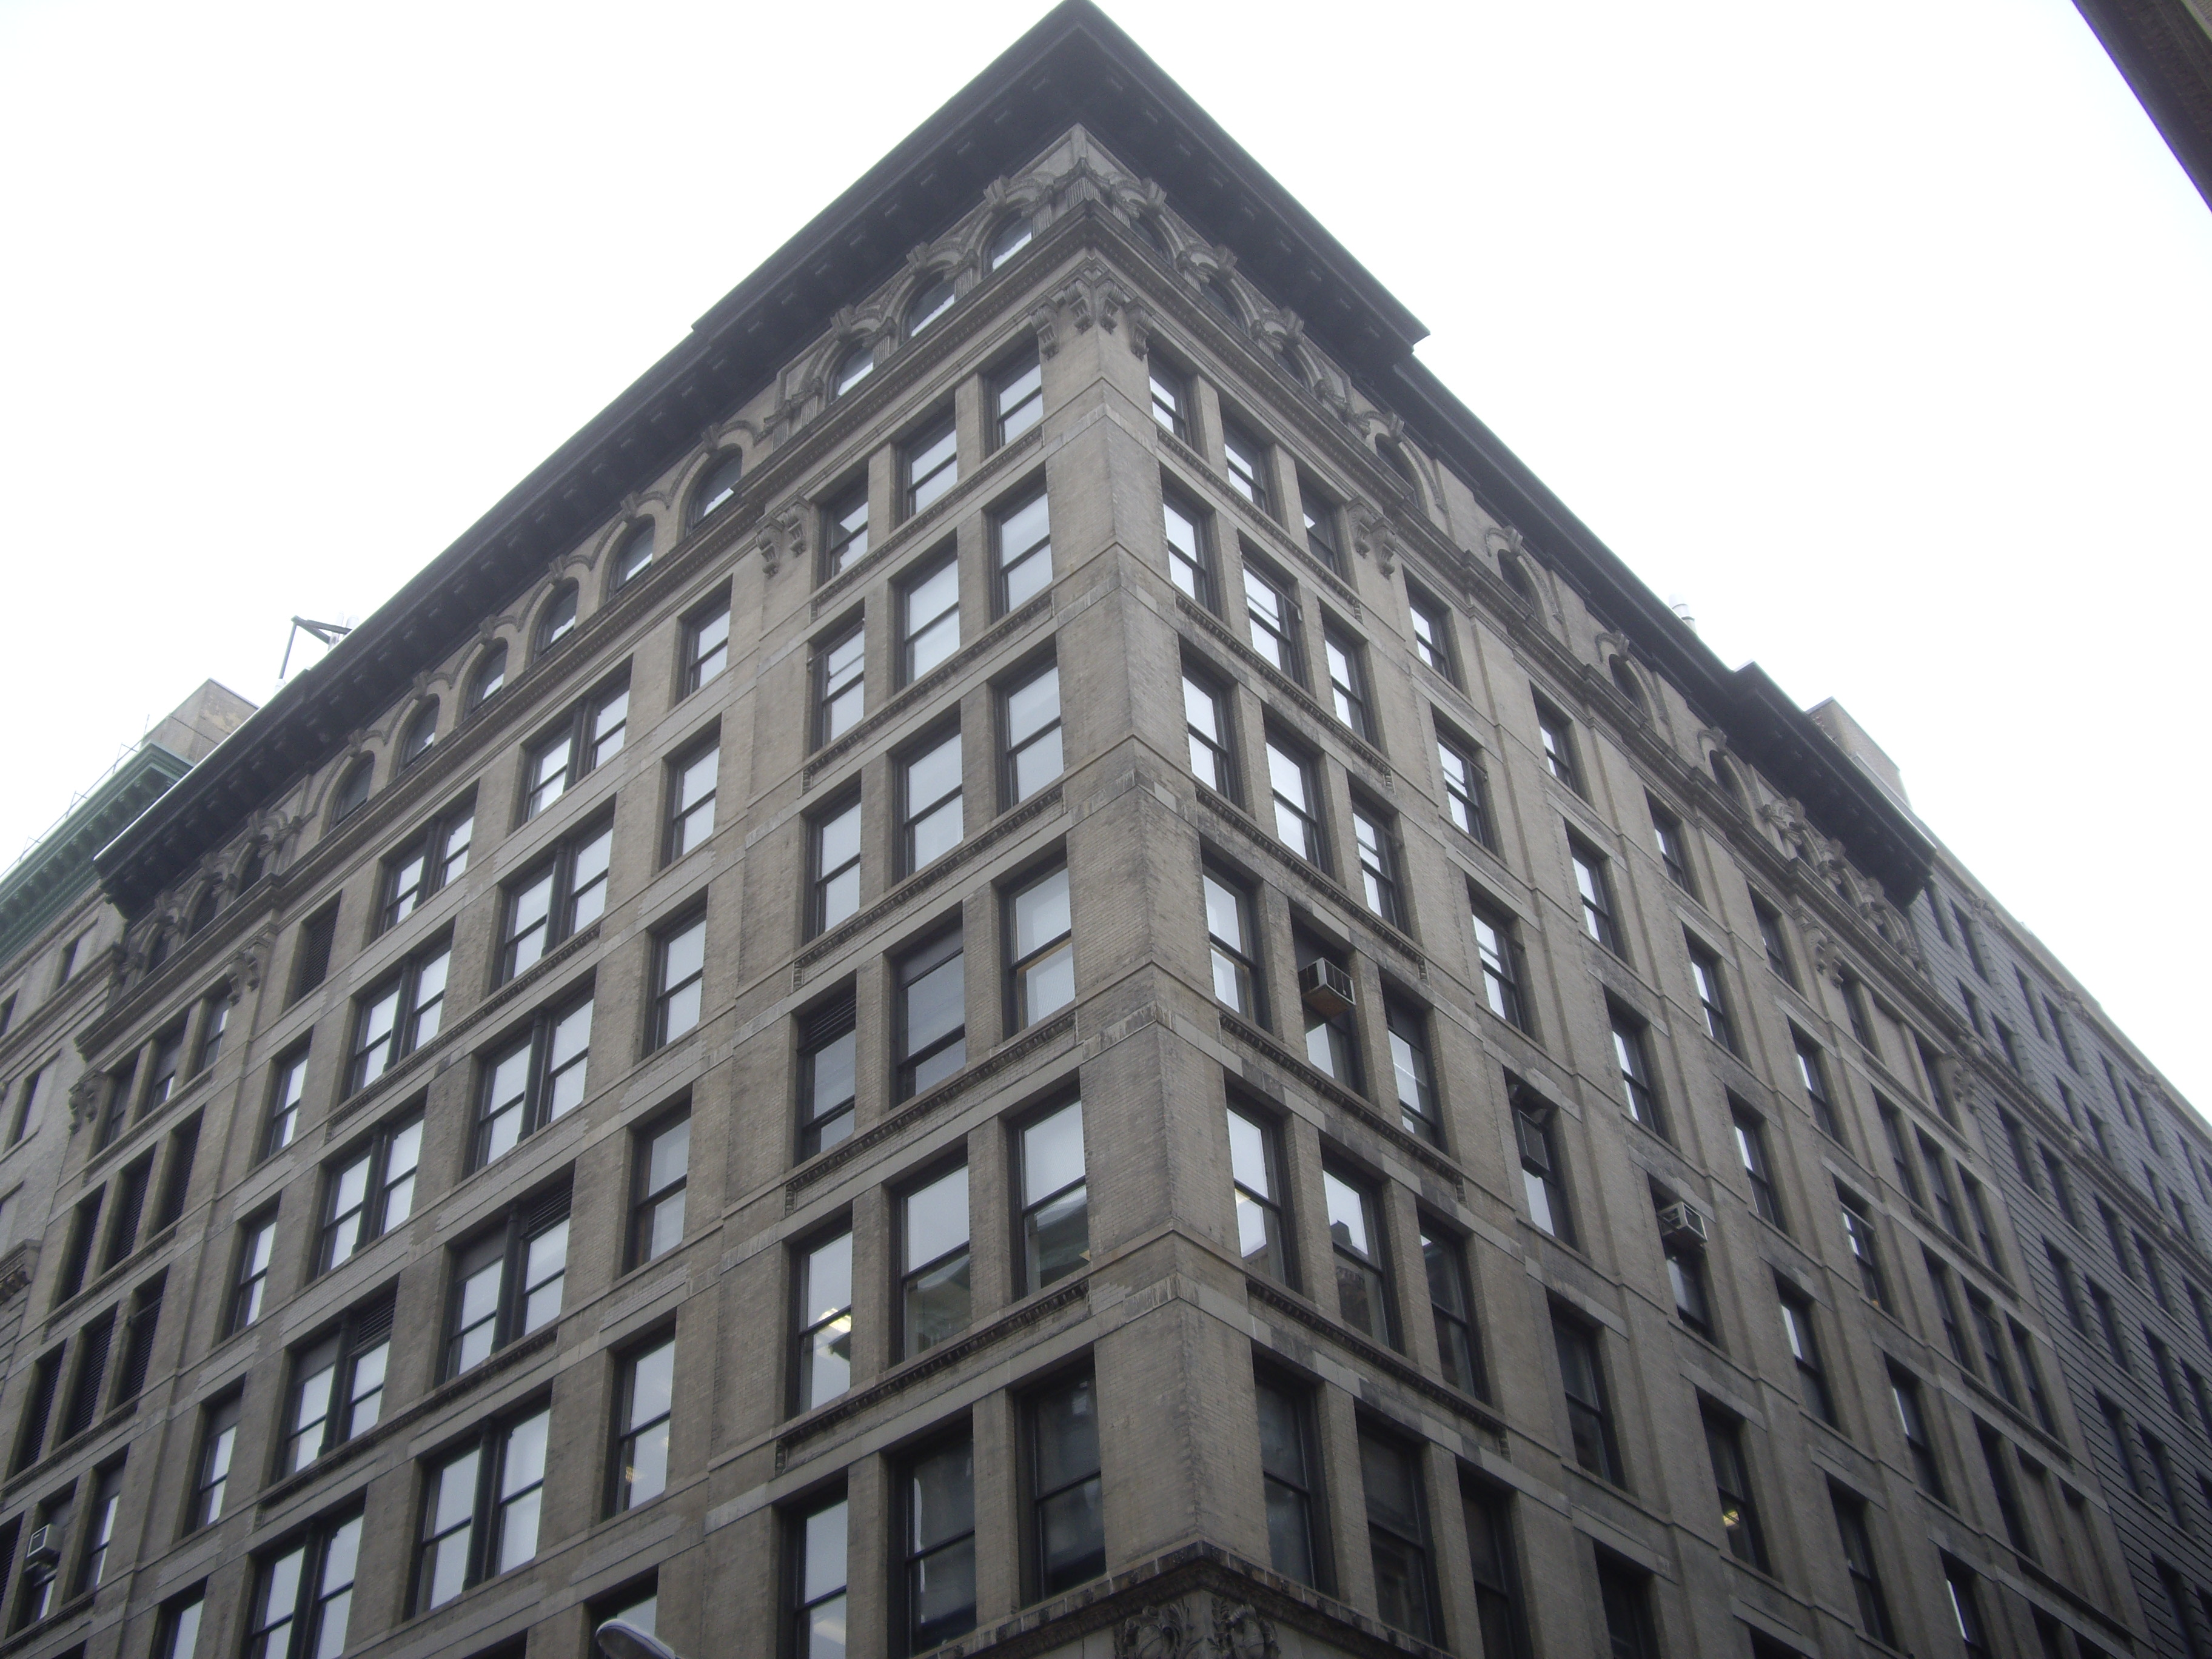 An introduction to the understanding the triangle shirtwaist factory disaster